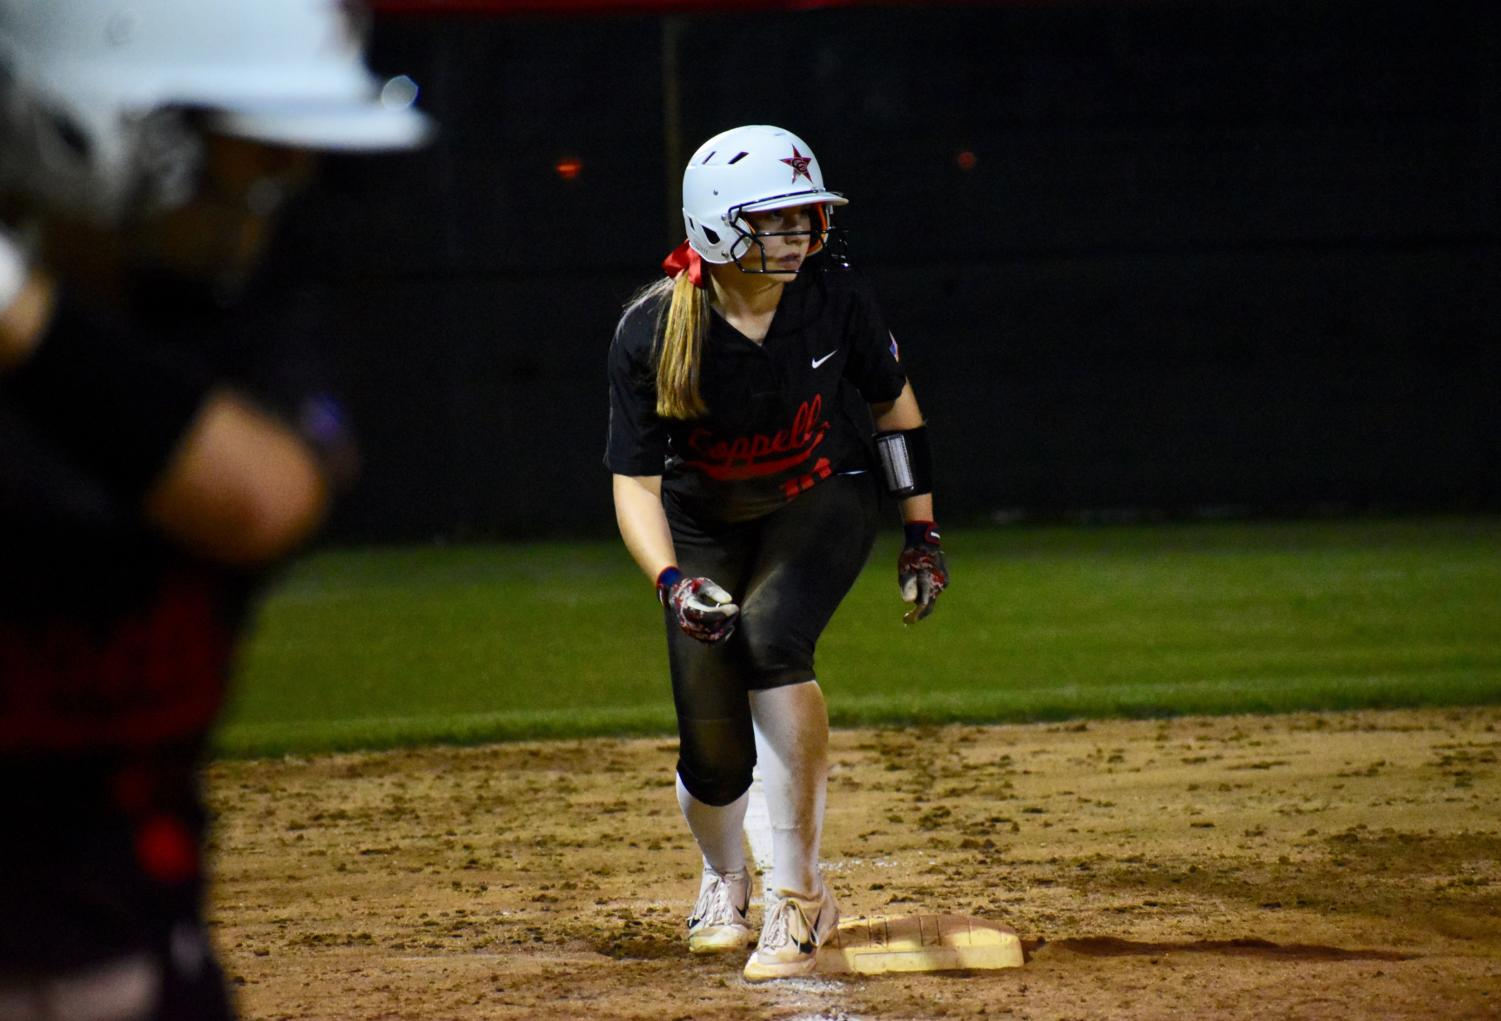 Coppell+senior+catcher+Kaitlyn+O%E2%80%99Quinn+leads+off+third+base+at+the+game+against+Keller+at+the+Colleyville+Heritage+High+School+on+Friday.+The+Cowgirls+lost%2C+5-2%2C+as+their+season+ended+in+the+first+round+of+playoffs.